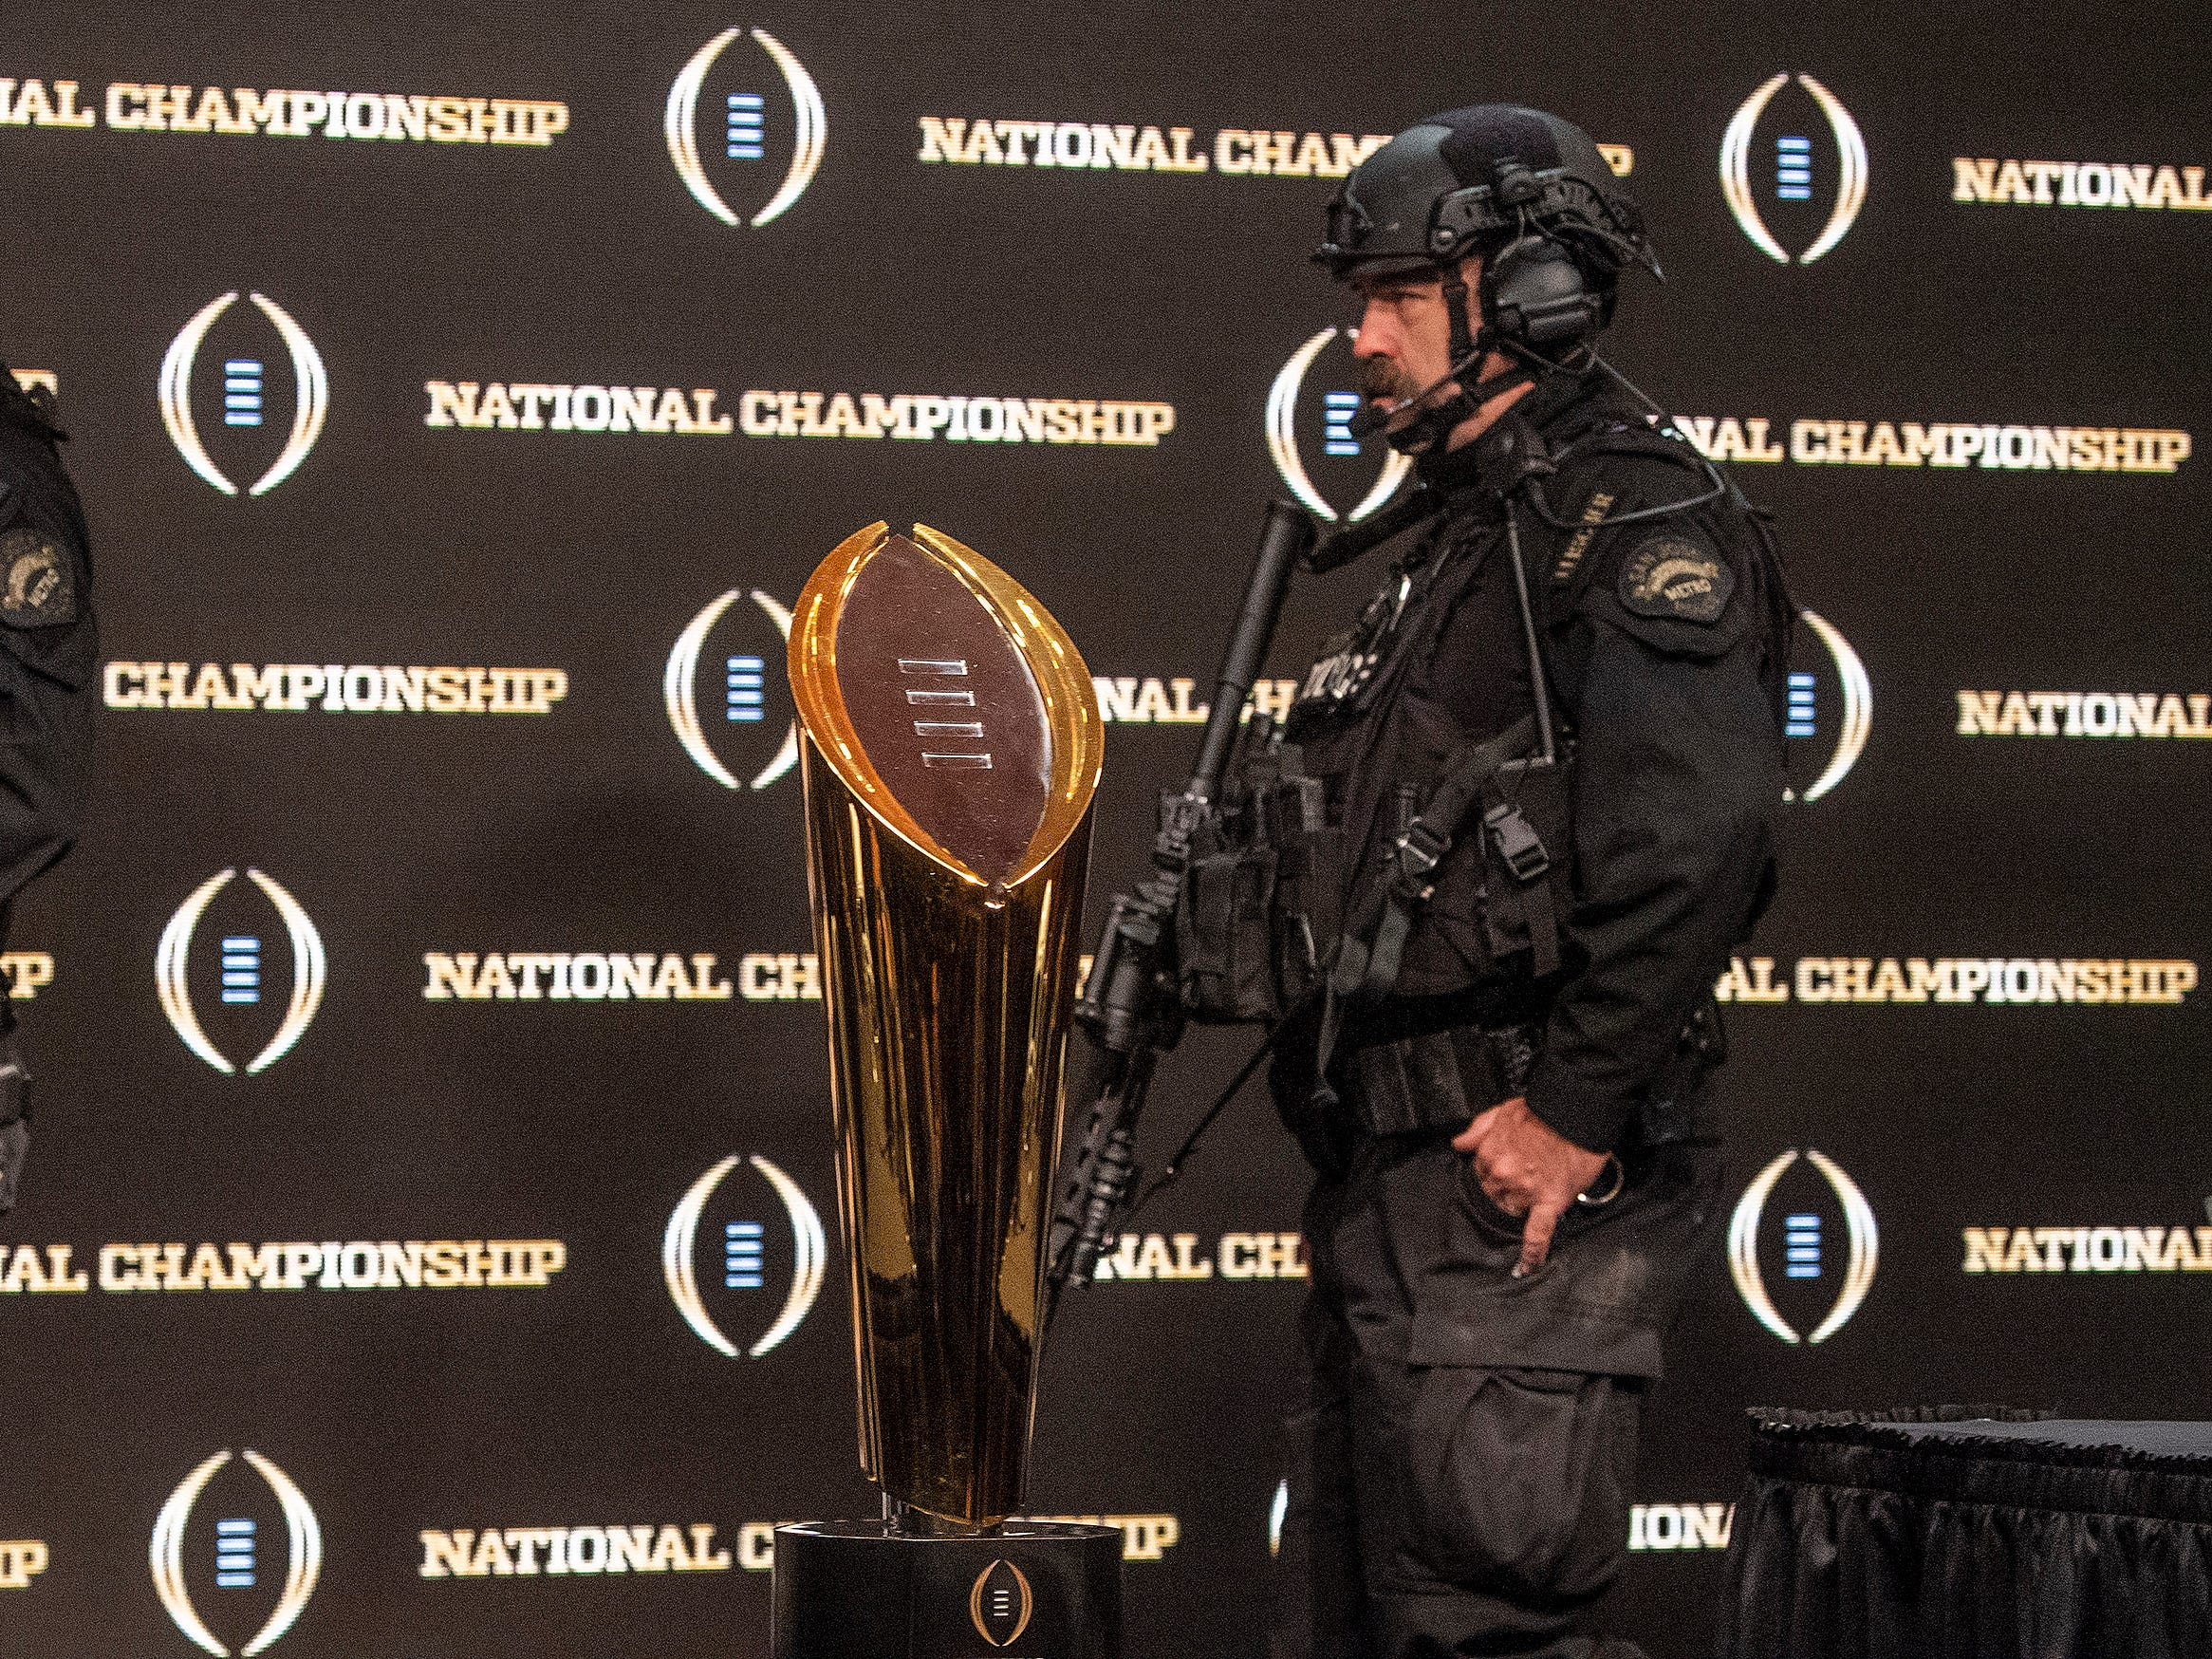 Armed guards walk past the National Championship Trophy before the College Football National Championship coaches press conference in San Jose, Ca., on Sunday January 6, 2019.